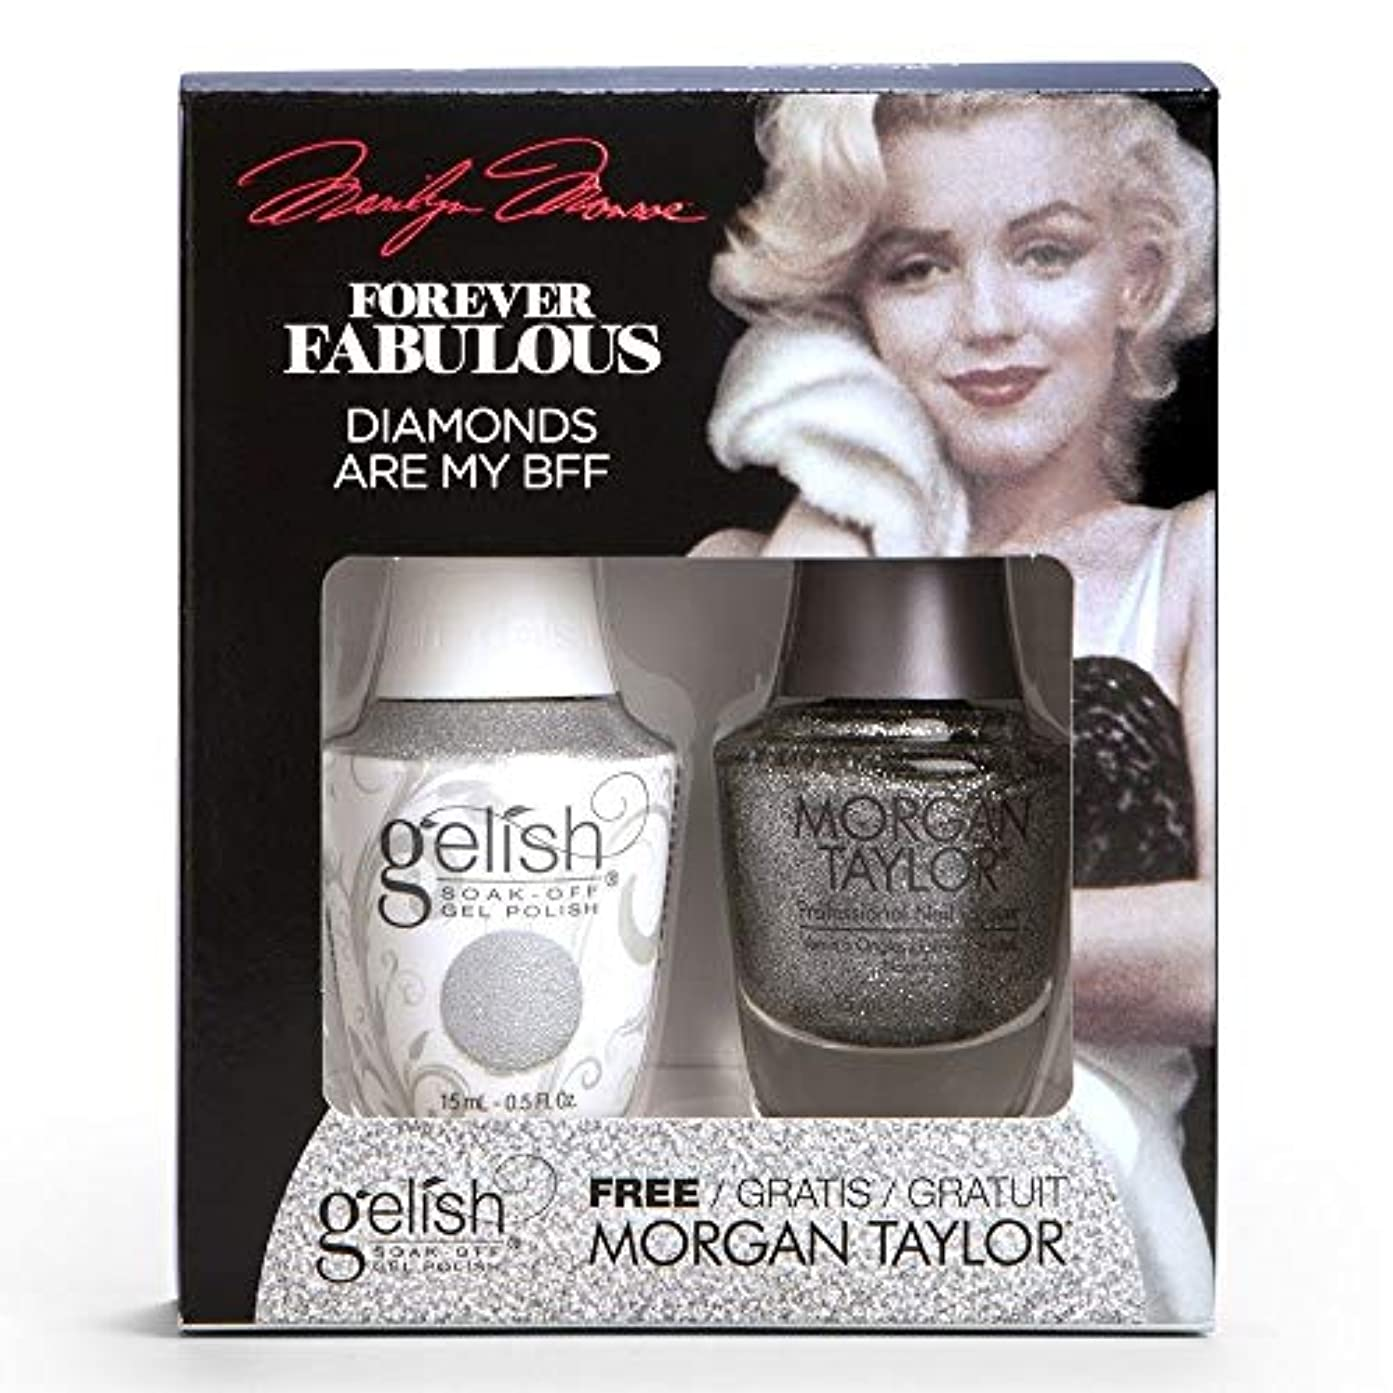 Harmony Gelish & Morgan Taylor - Two Of A Kind - Forever Fabulous Marilyn Monroe - Diamonds Are My BFF - 15 mL...